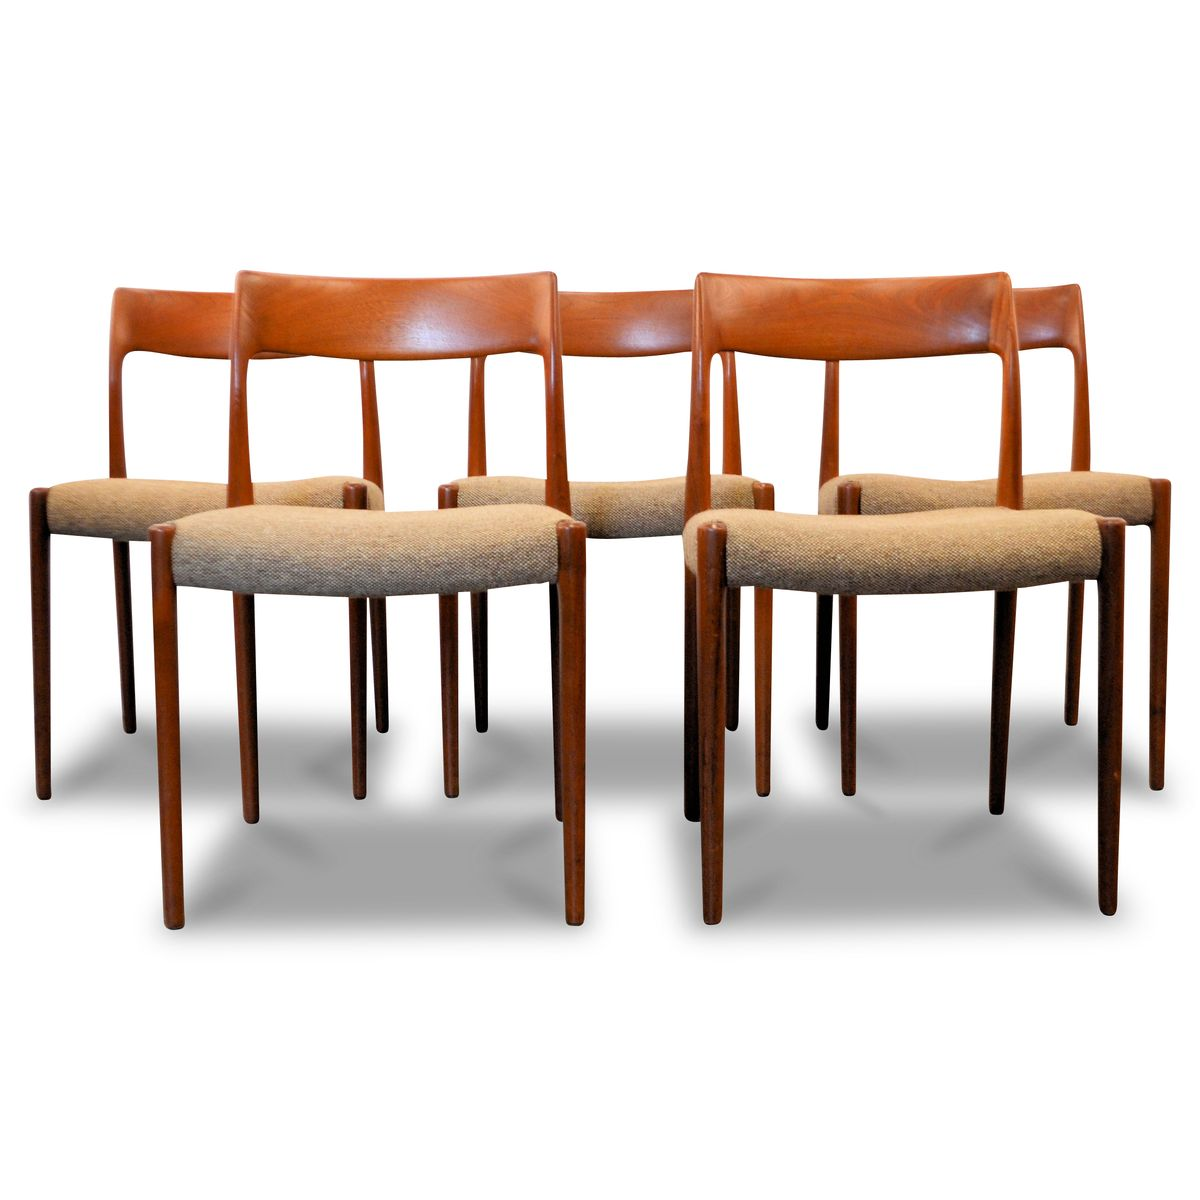 Nr. 77 Teak Dining Chairs By Niels O. Møller For J.L. Møller, 1960s, Set Of  5